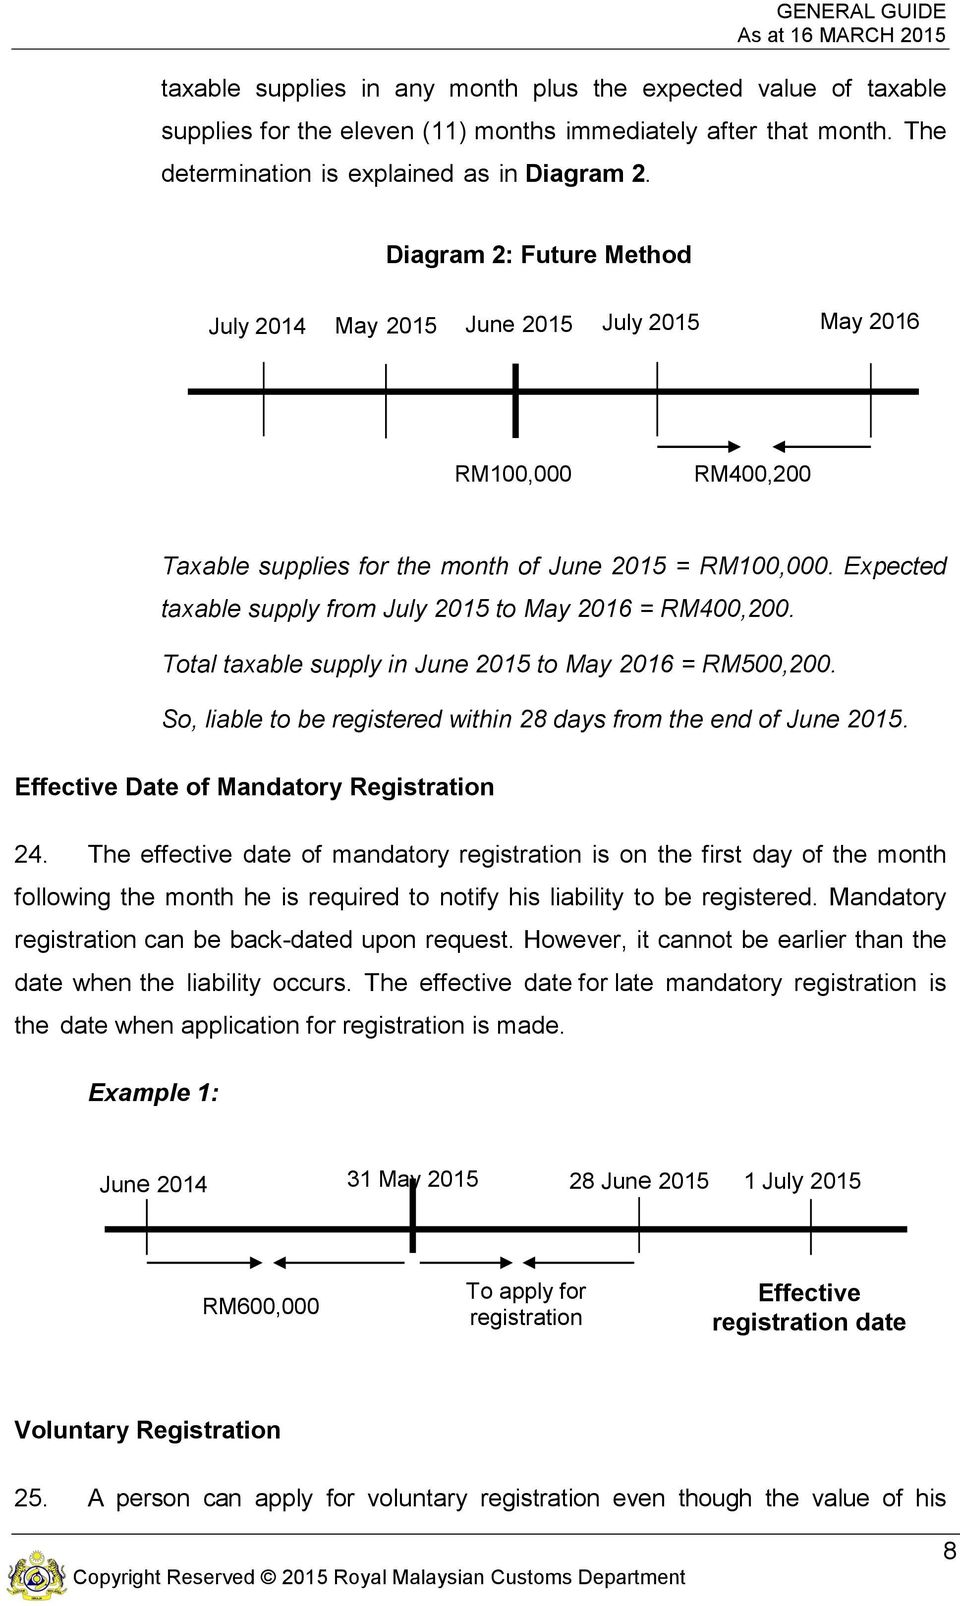 Expected taxable supply from July 2015 to May 2016 = RM400,200. Total taxable supply in June 2015 to May 2016 = RM500,200. So, liable to be registered within 28 days from the end of June 2015.